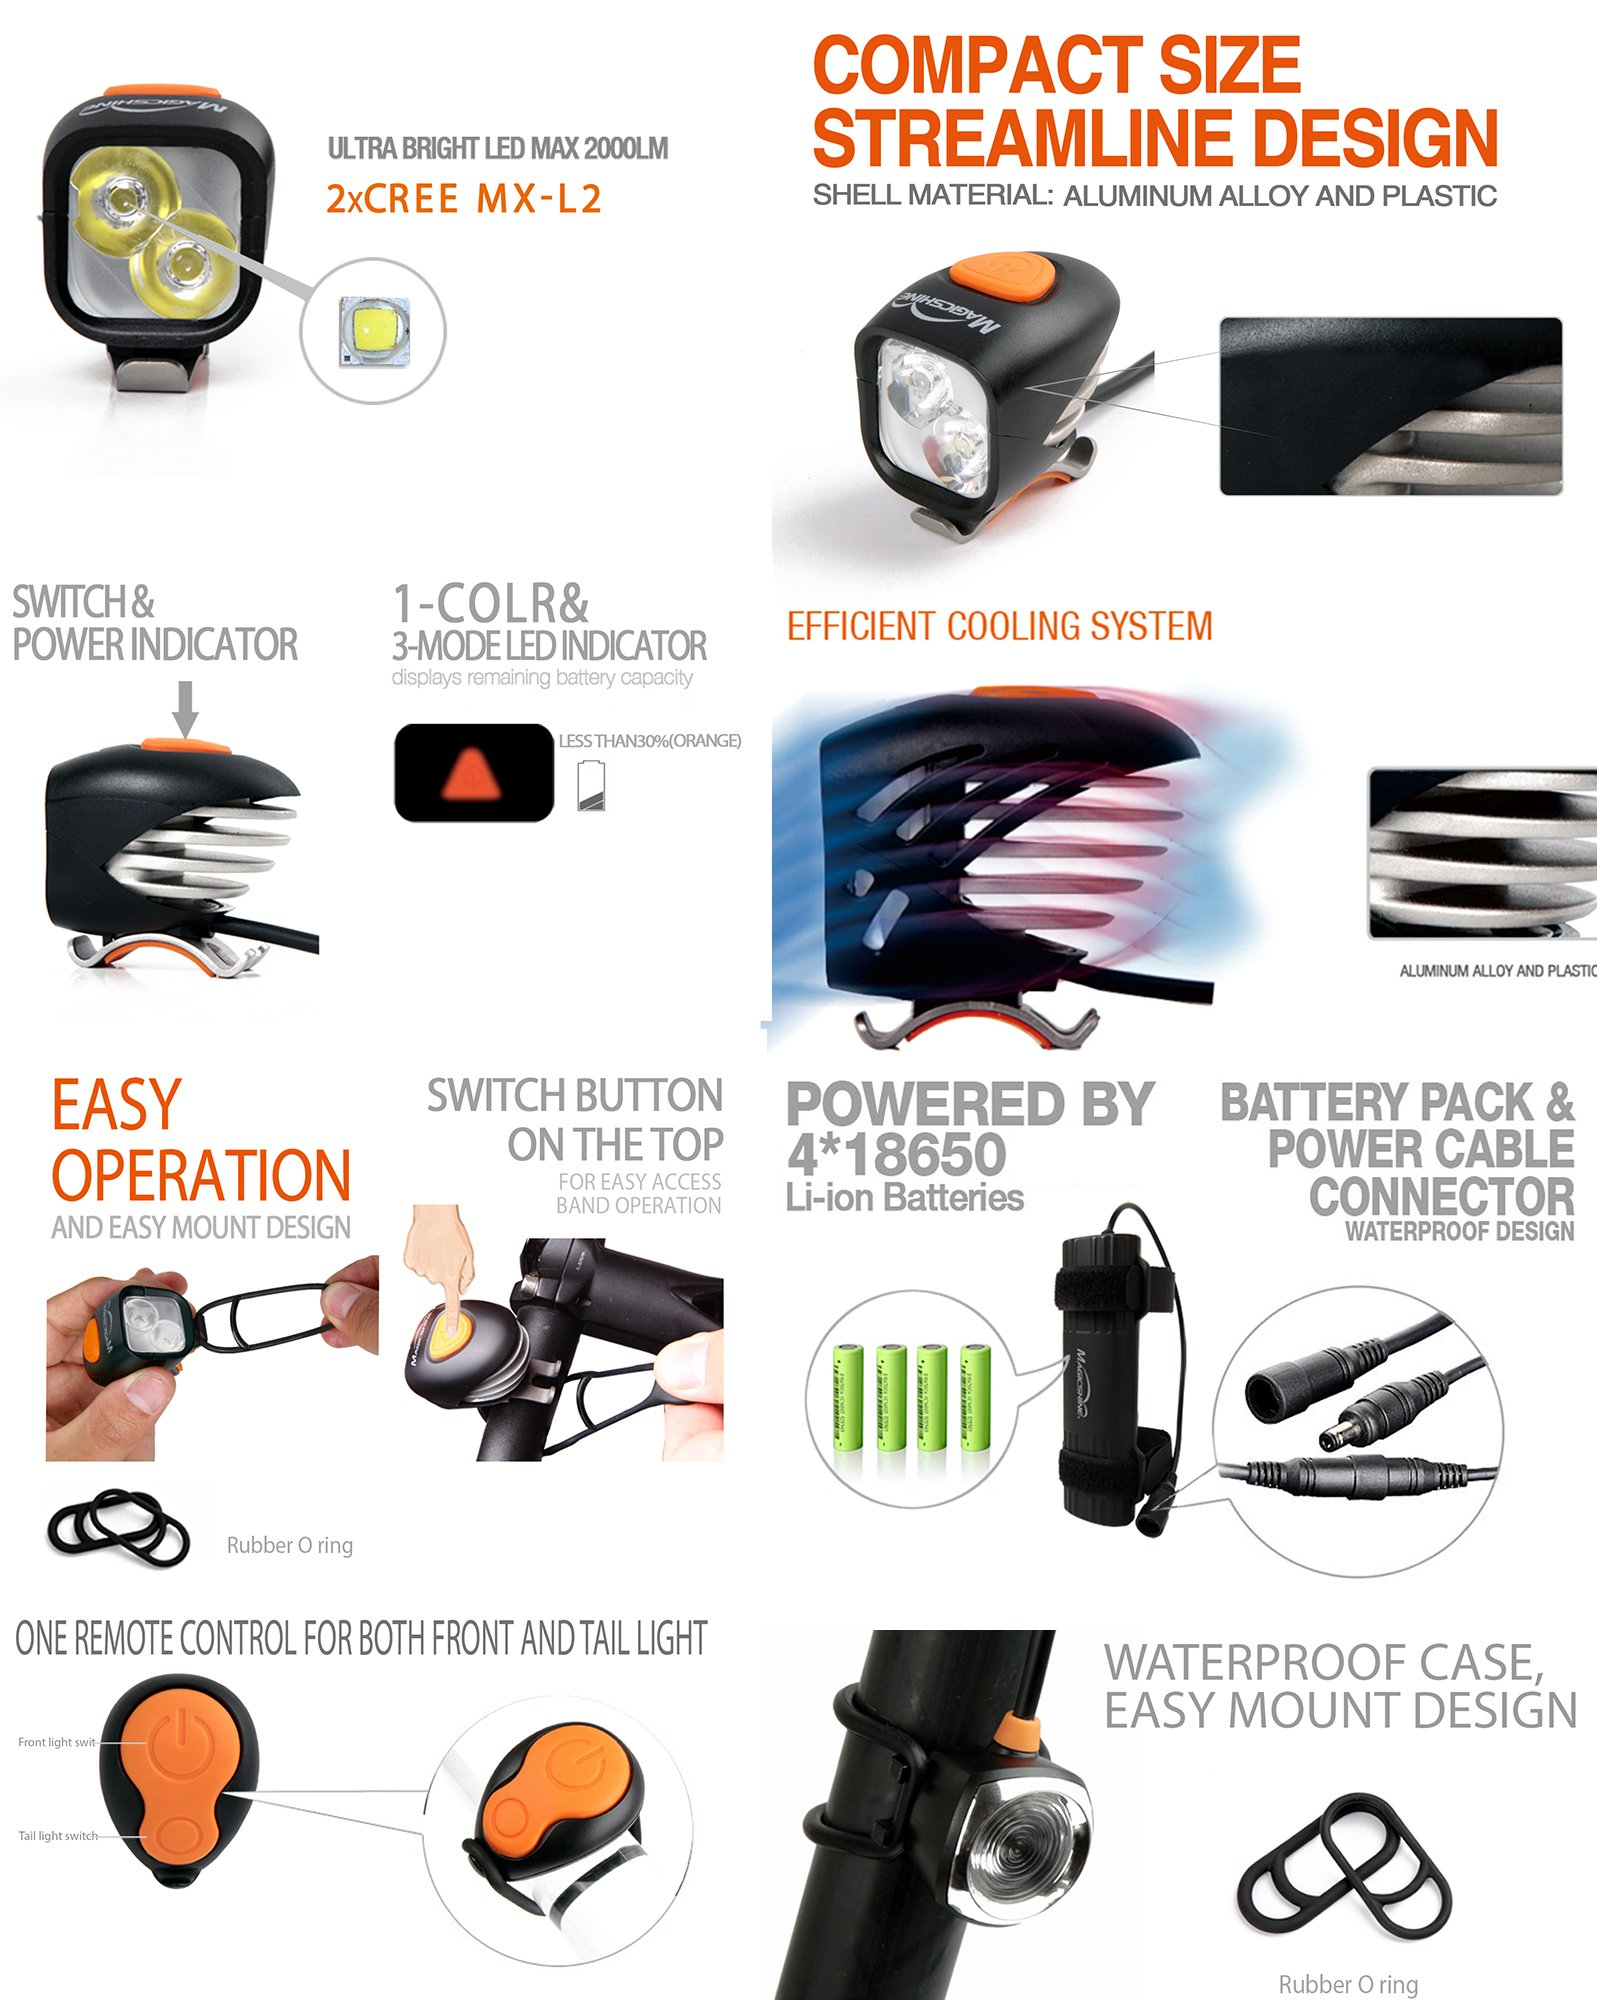 Magicshine MJ 902, 1600 Lumens Bike Light Set, Wireless Remote Bicycle Lights Front And Rear Combo, Rechargeable 2 CREE XM-L2 LED Bike Tail Light, Portable & Convenient Bright Bike Light by Magicshine (Image #3)